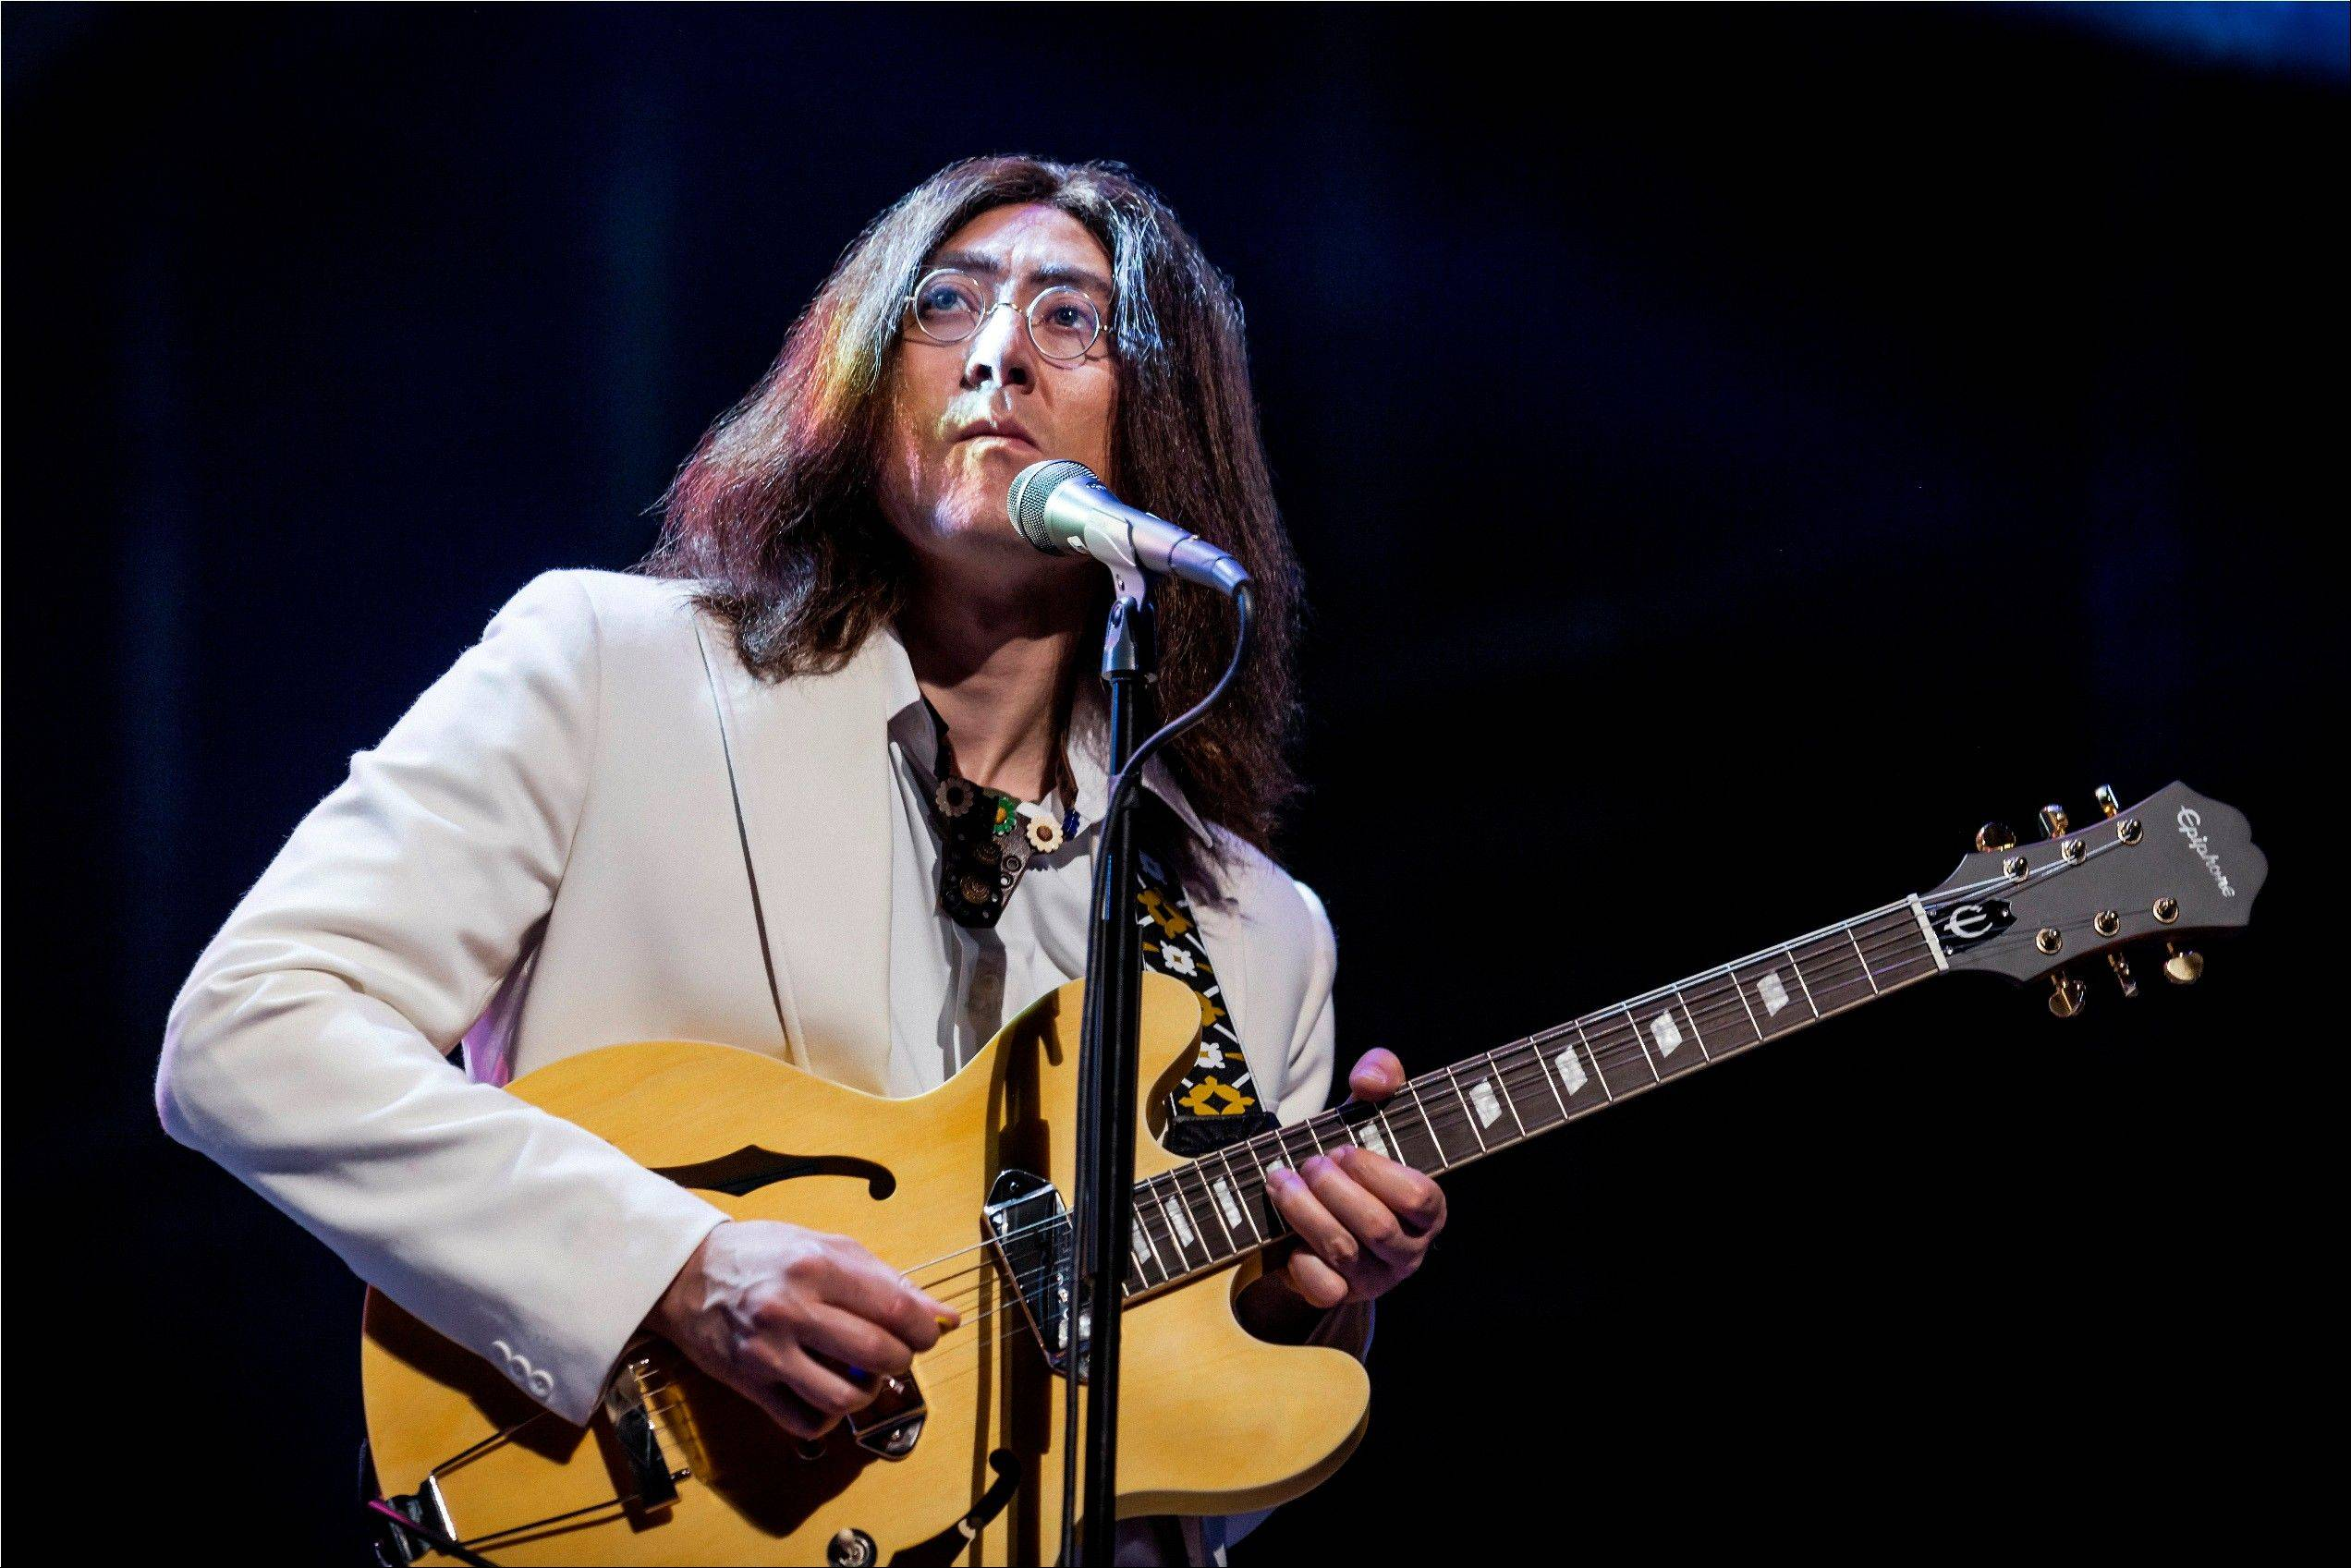 Reuven Gershon performs �Come Together� in the rock musical �Let It Be� at the St. James Theater in New York.